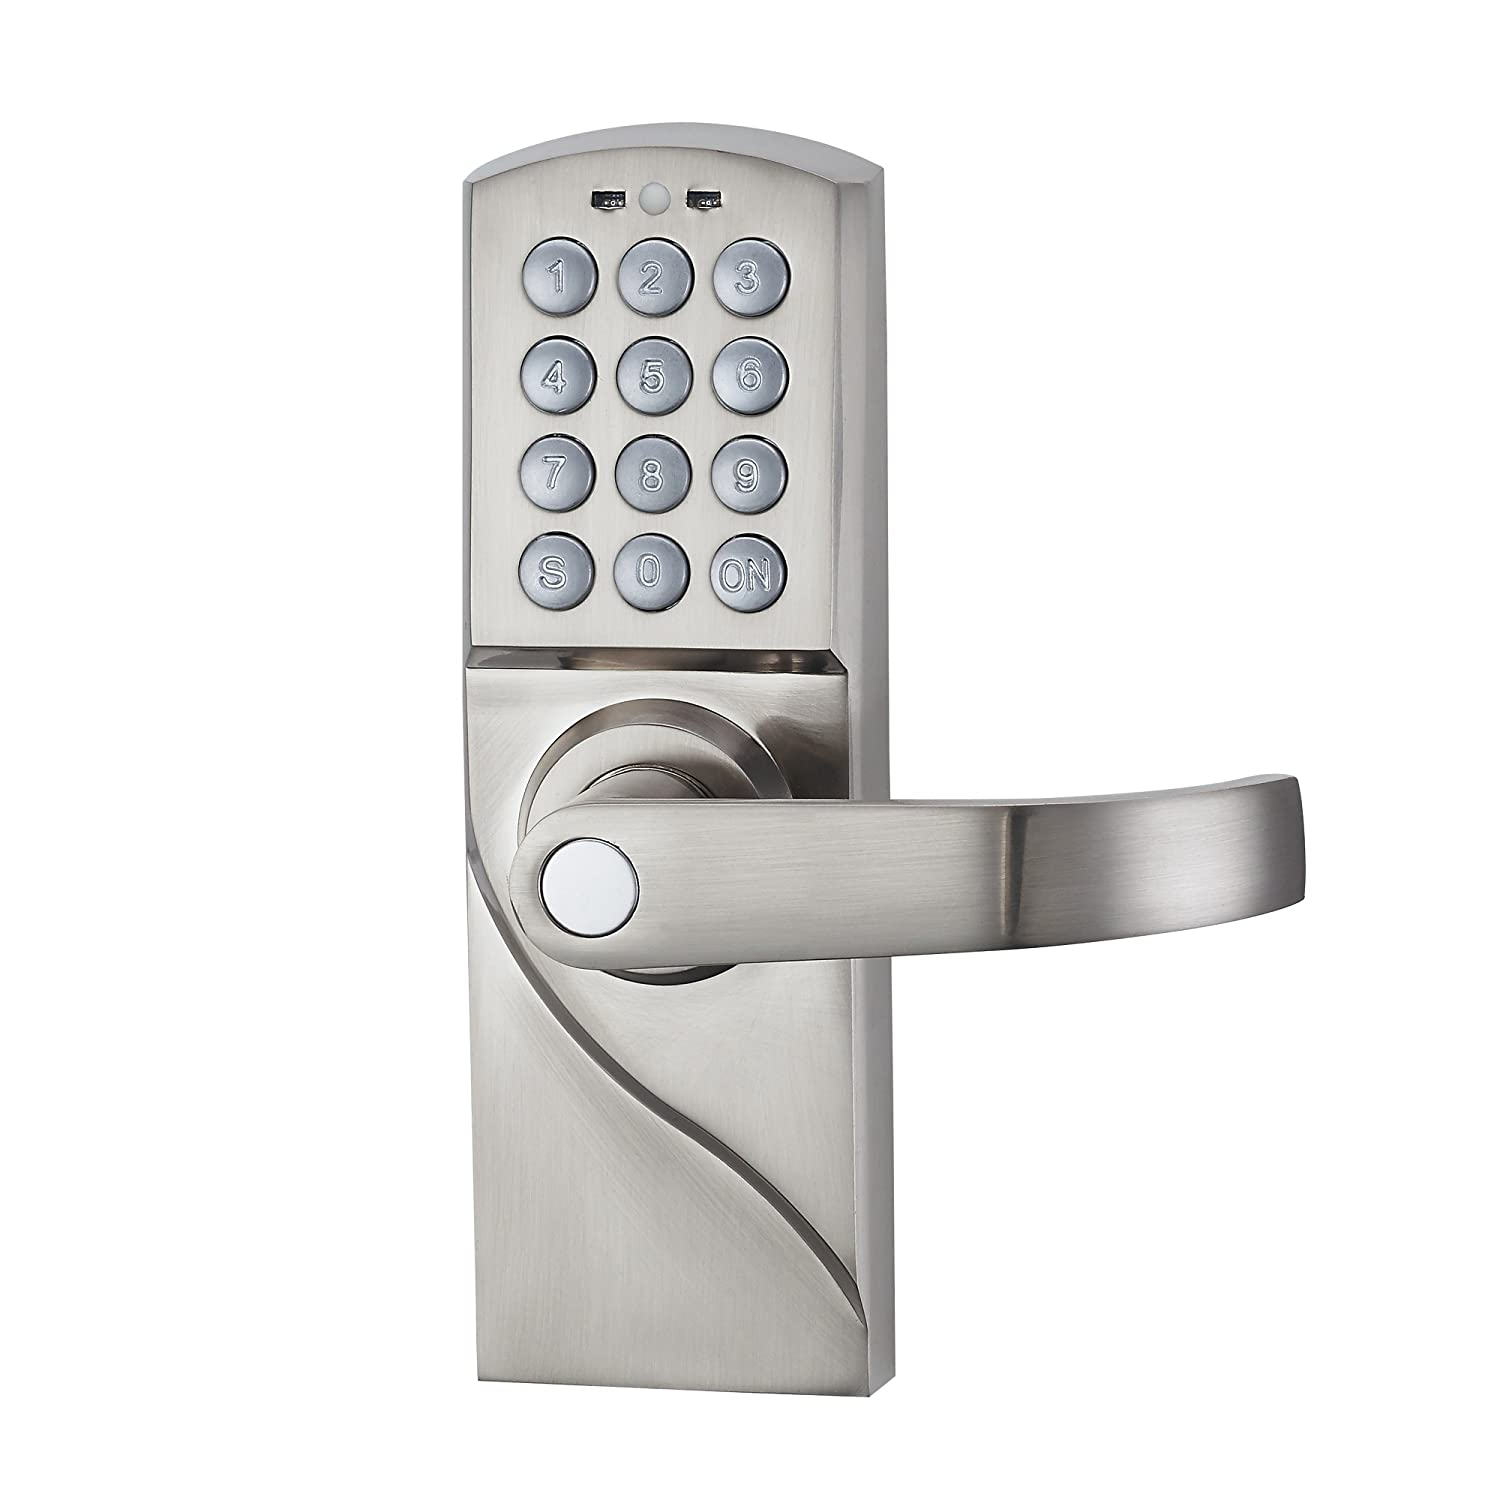 Schlage Fe575 Ply 626 Ela Plymouth Keypad Entry With Auto Lock And How To Build Electronic Security Door Key Haifuan Right Hand Digital Backup Keys Keyless By Password Code Combinationfor Handed Doors Only